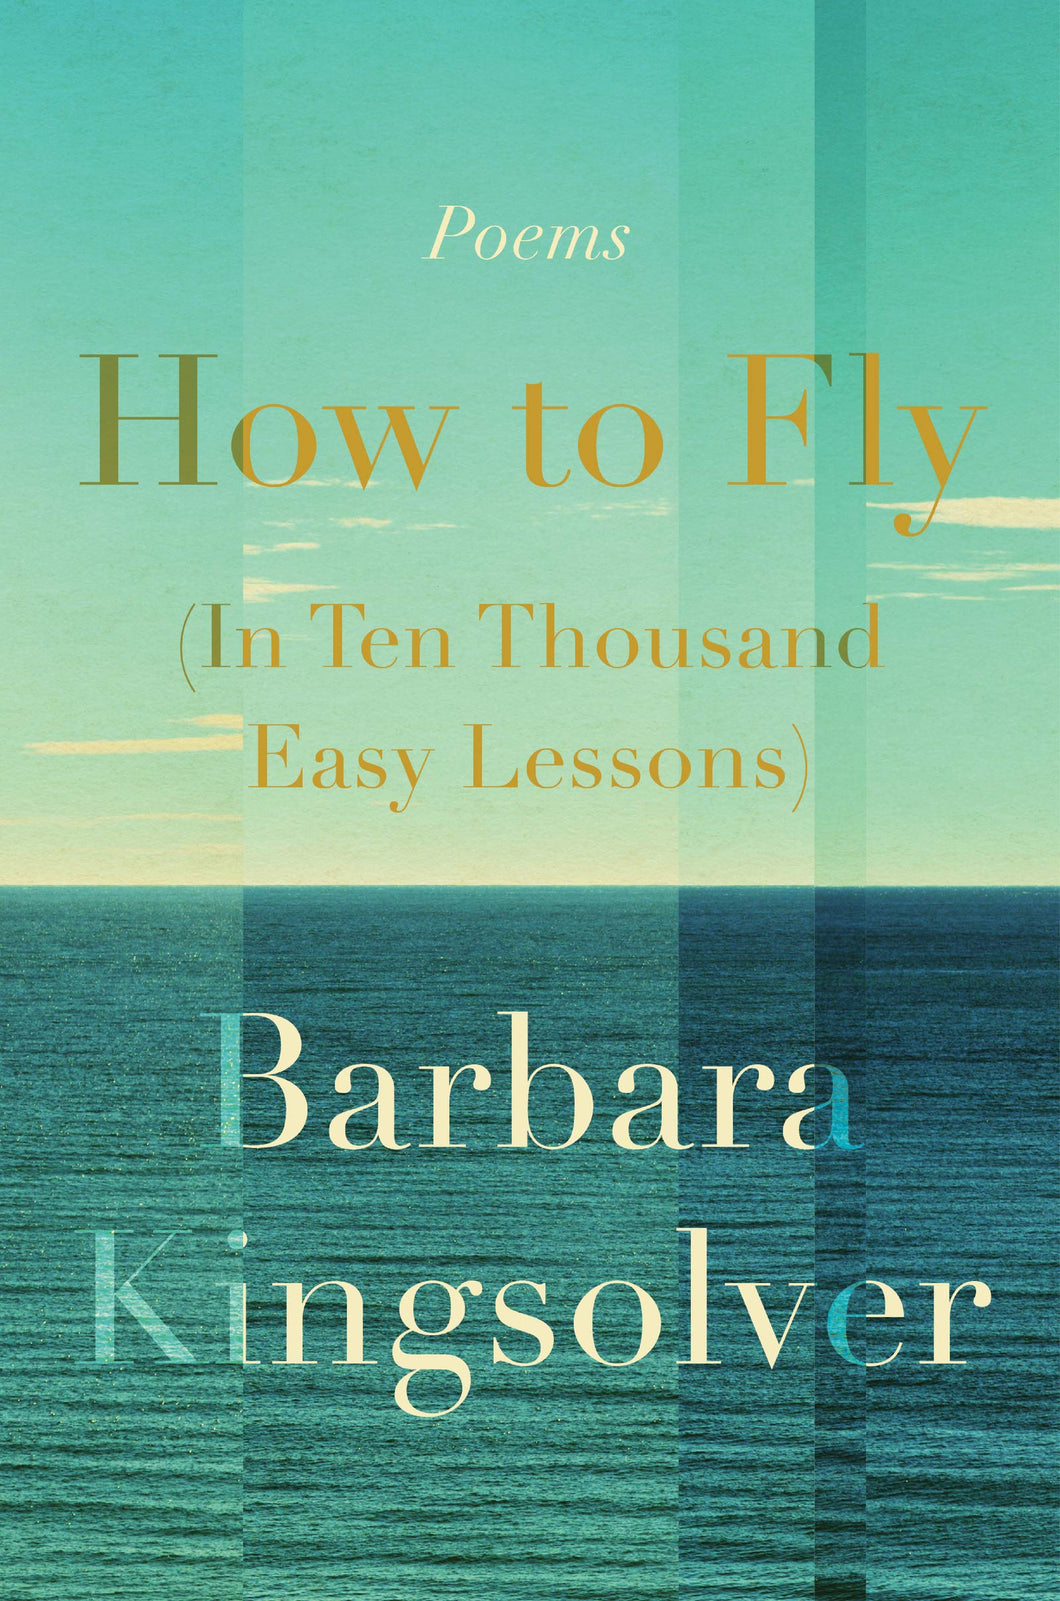 How to Fly: Poems (In Ten Thousand Easy Lessons)